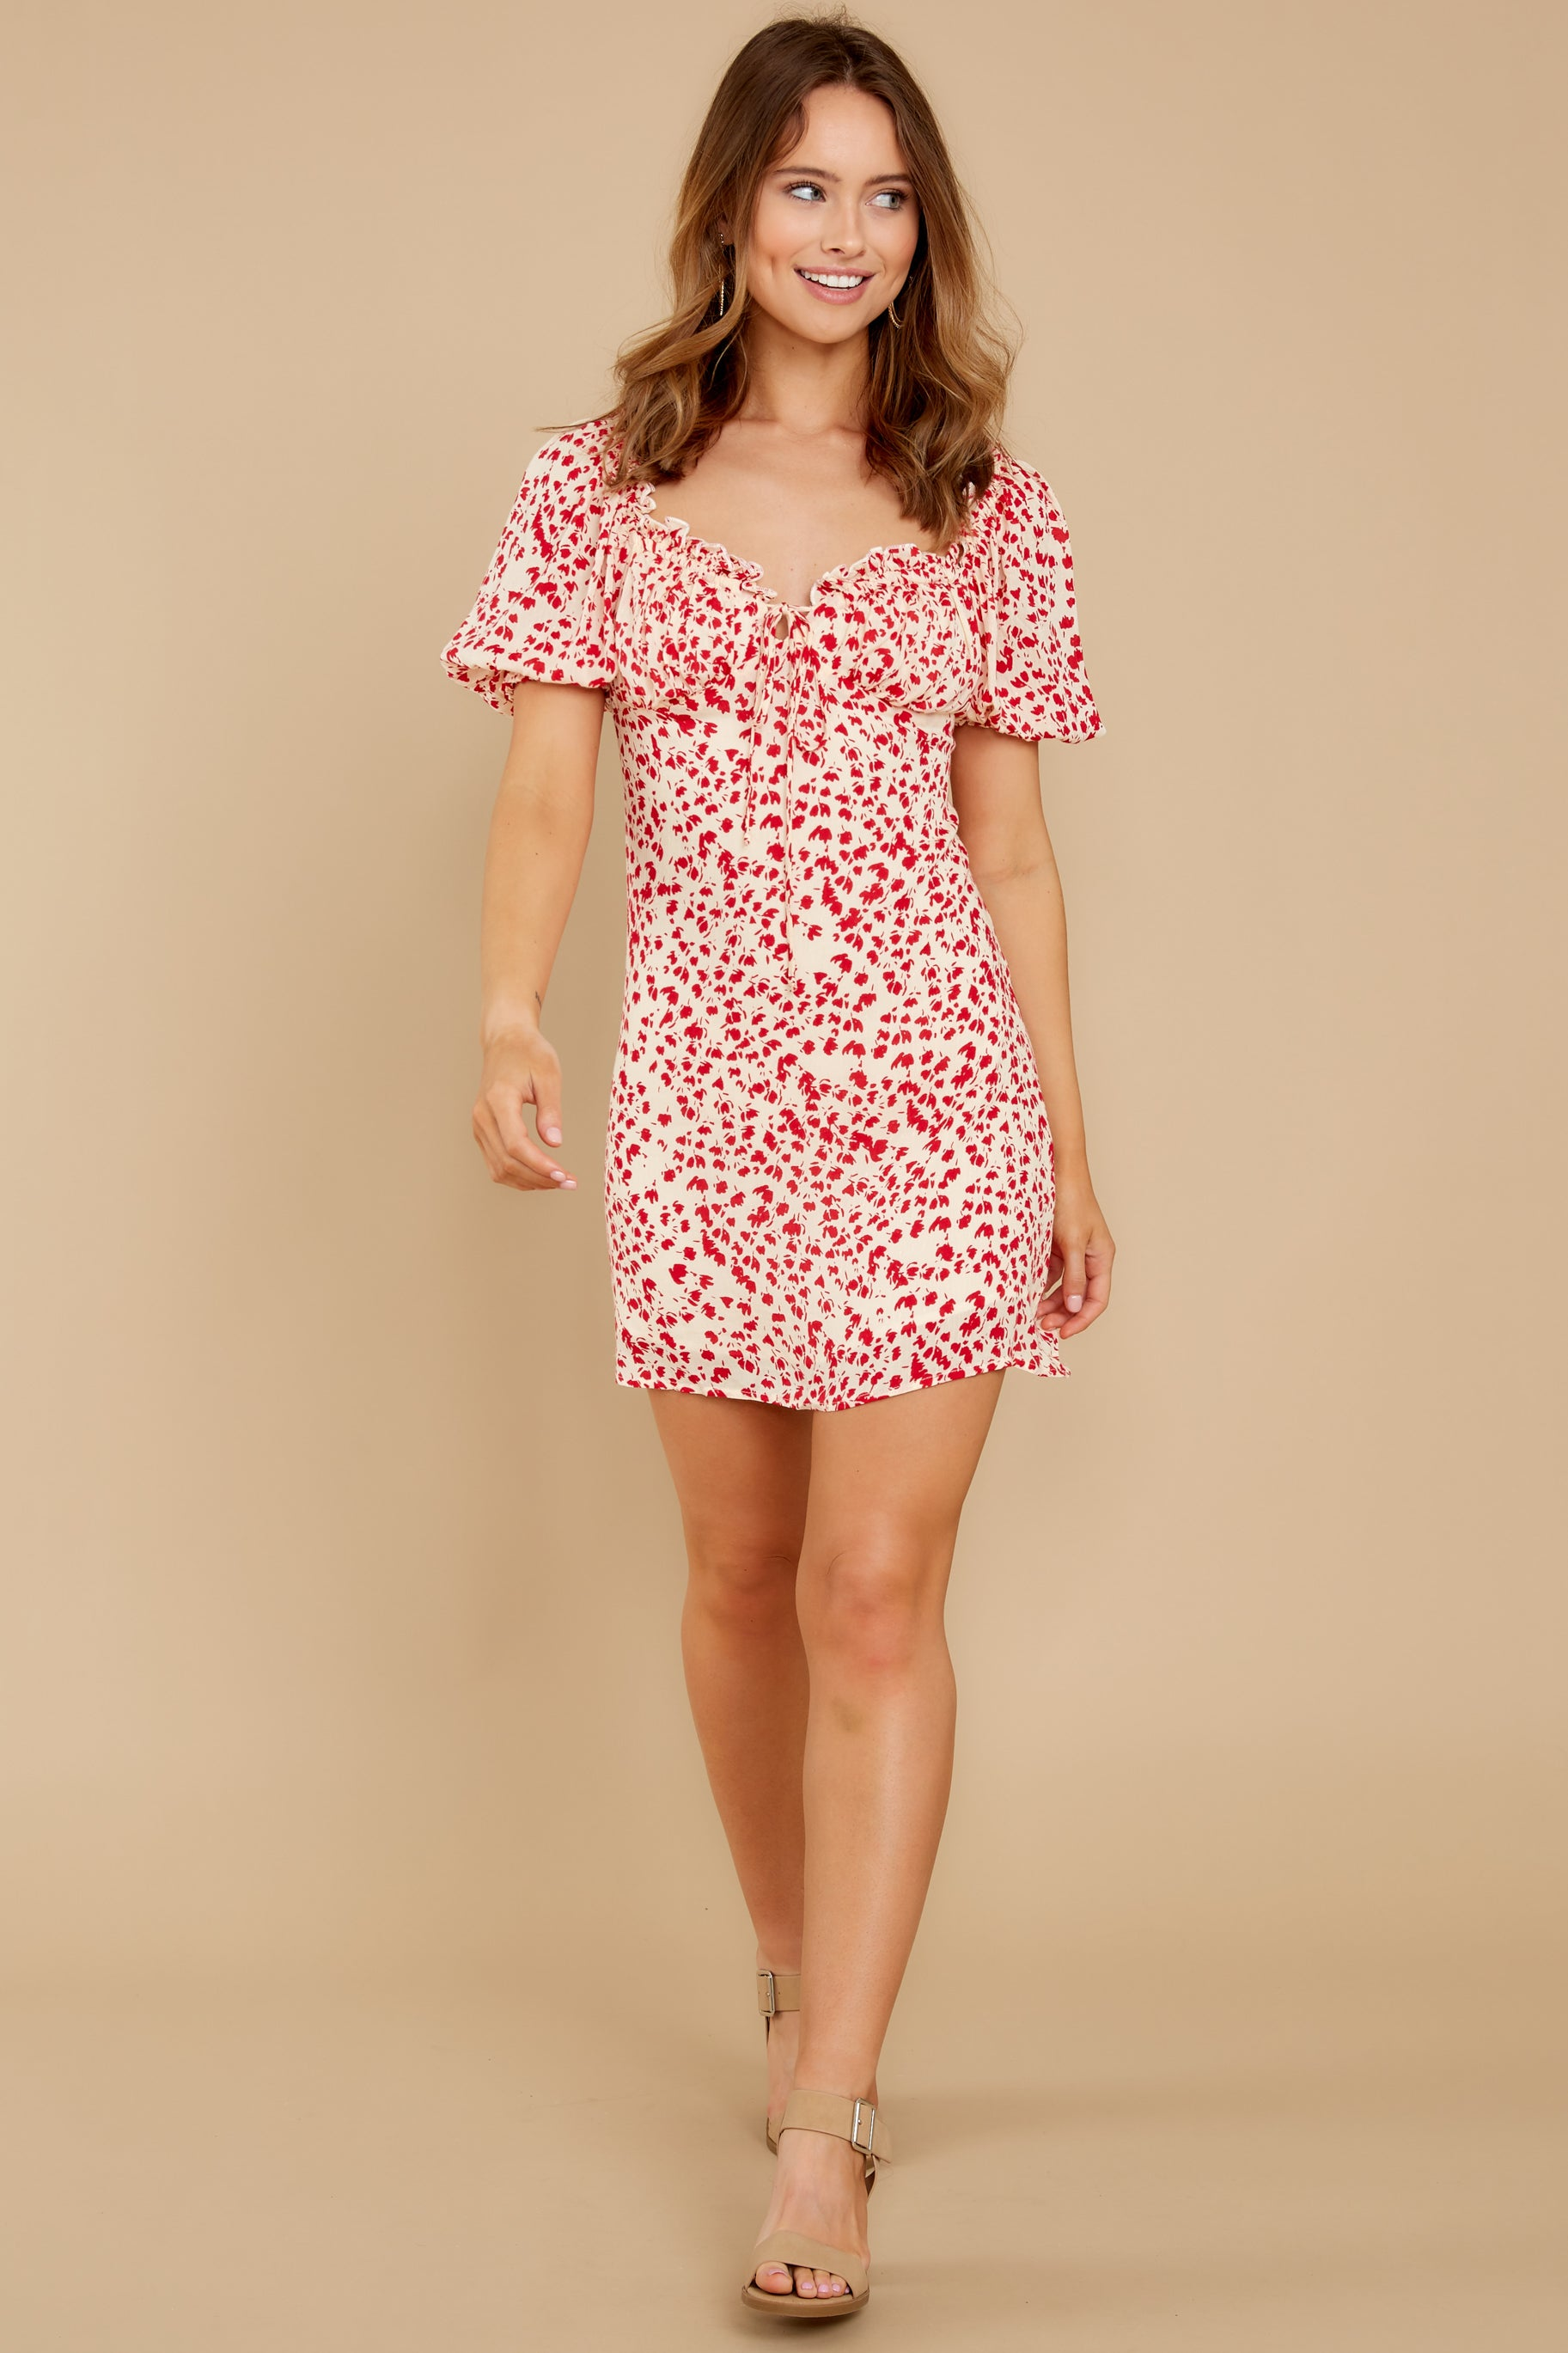 5 My Promenade Red Floral Print Dress at reddress.com